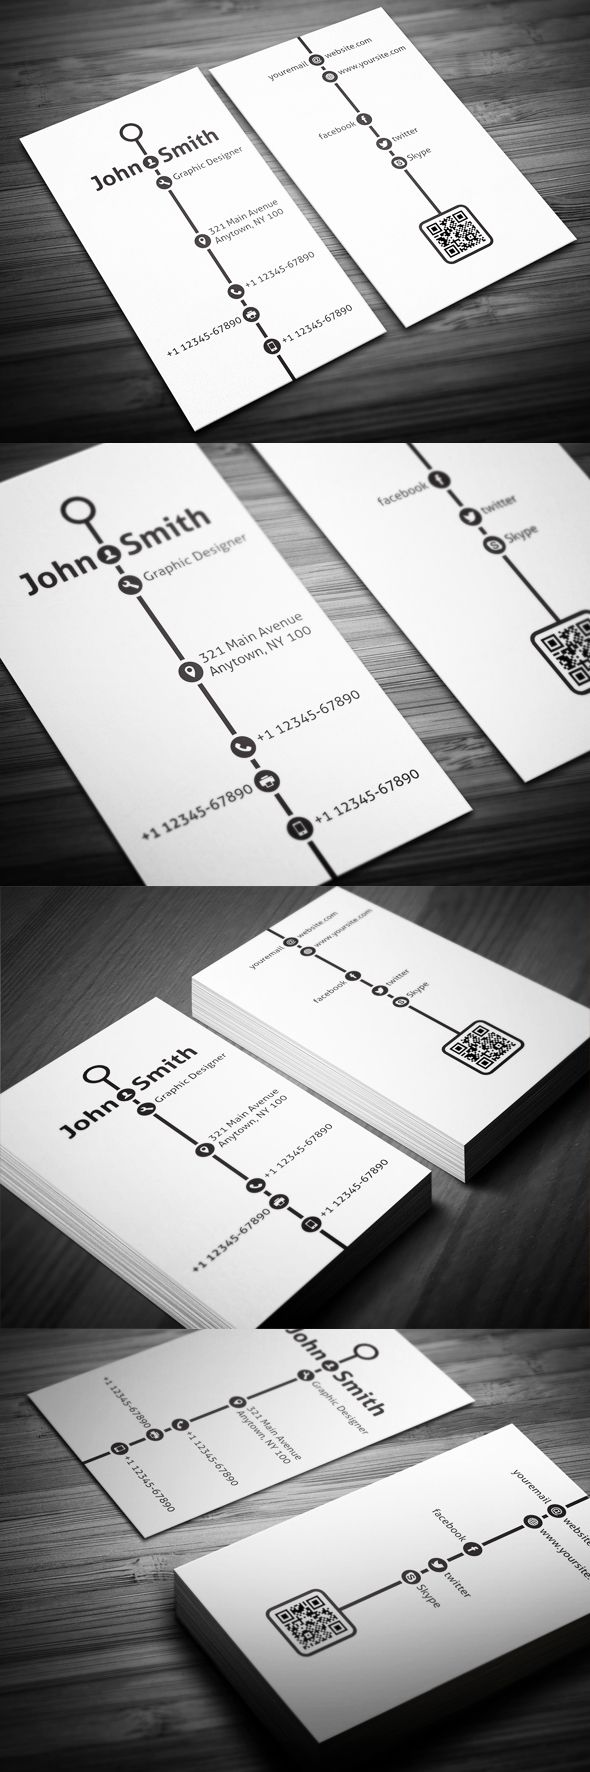 217 Best Tarjetas Images On Pinterest Business Card Design